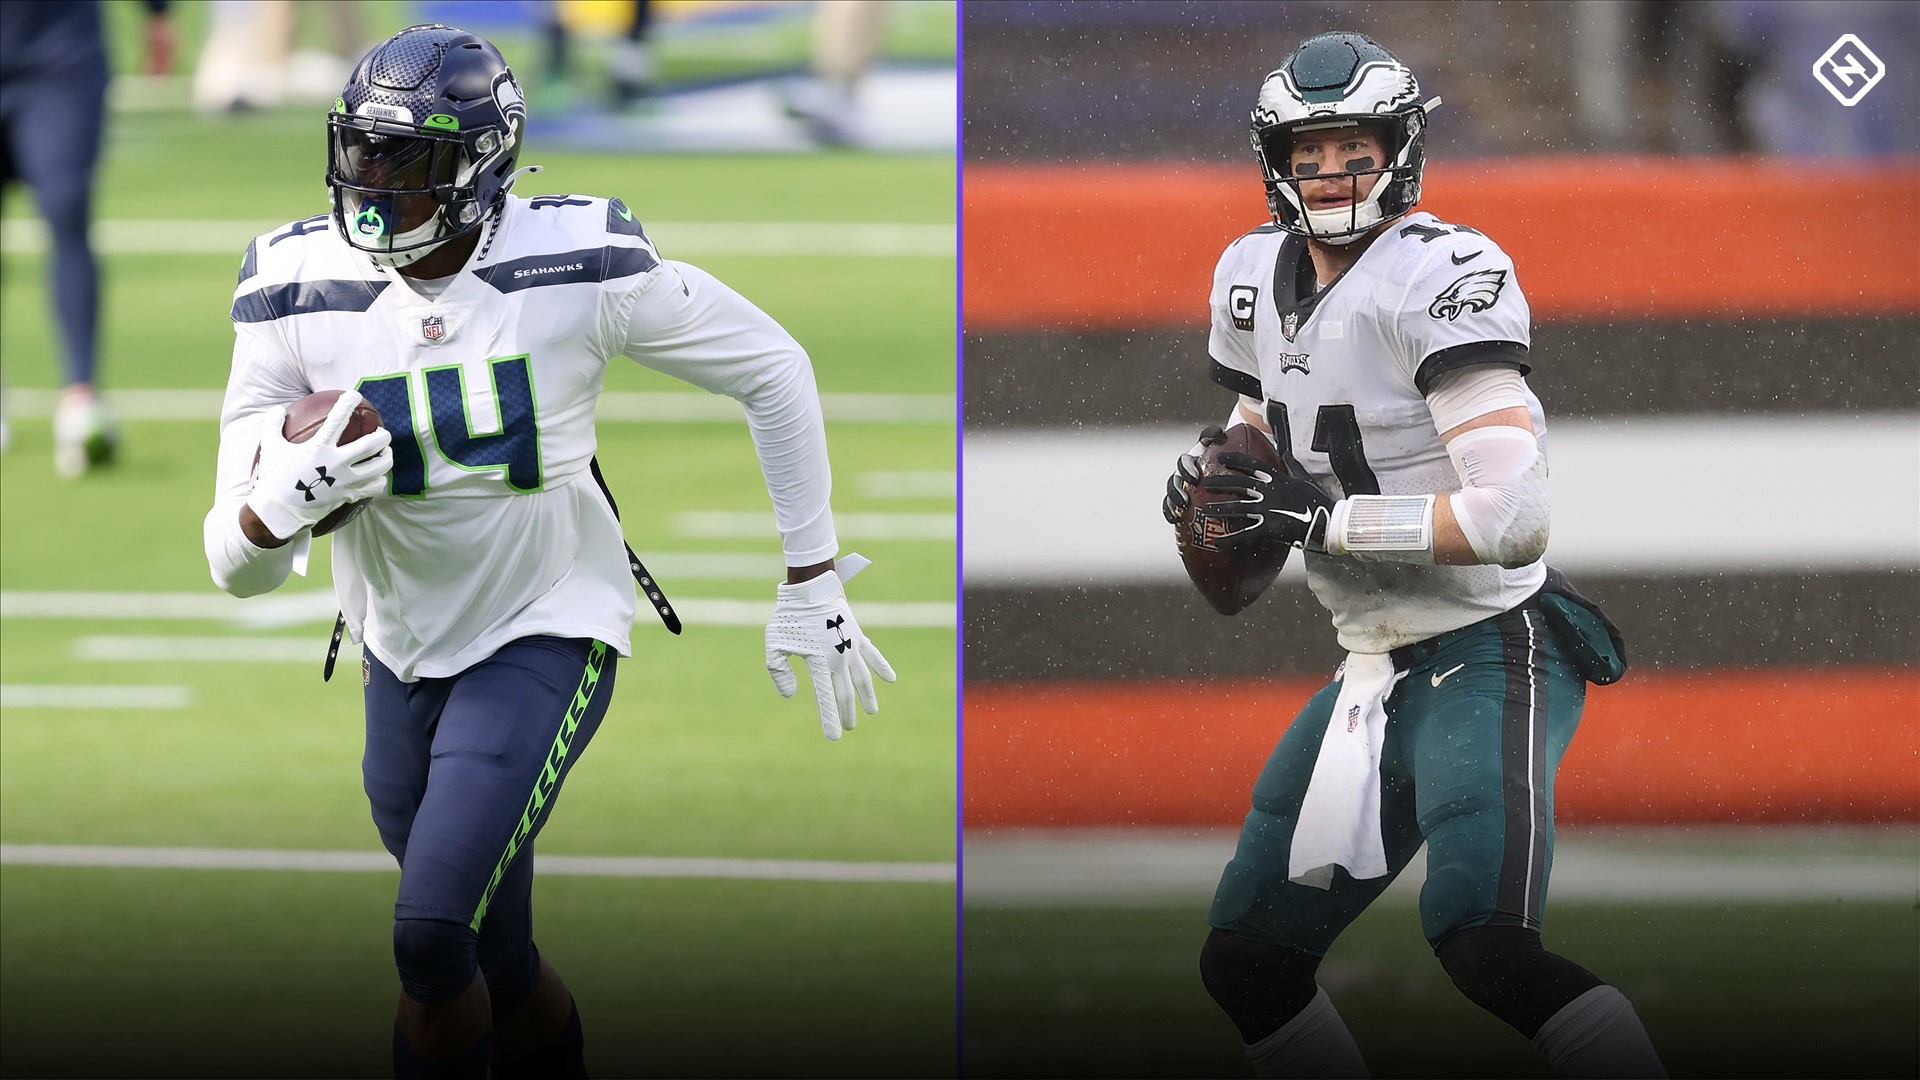 Seahawks' DK Metcalf, DeeJay Dallas say Eagles should bench Carson Wentz and start Jalen Hurts